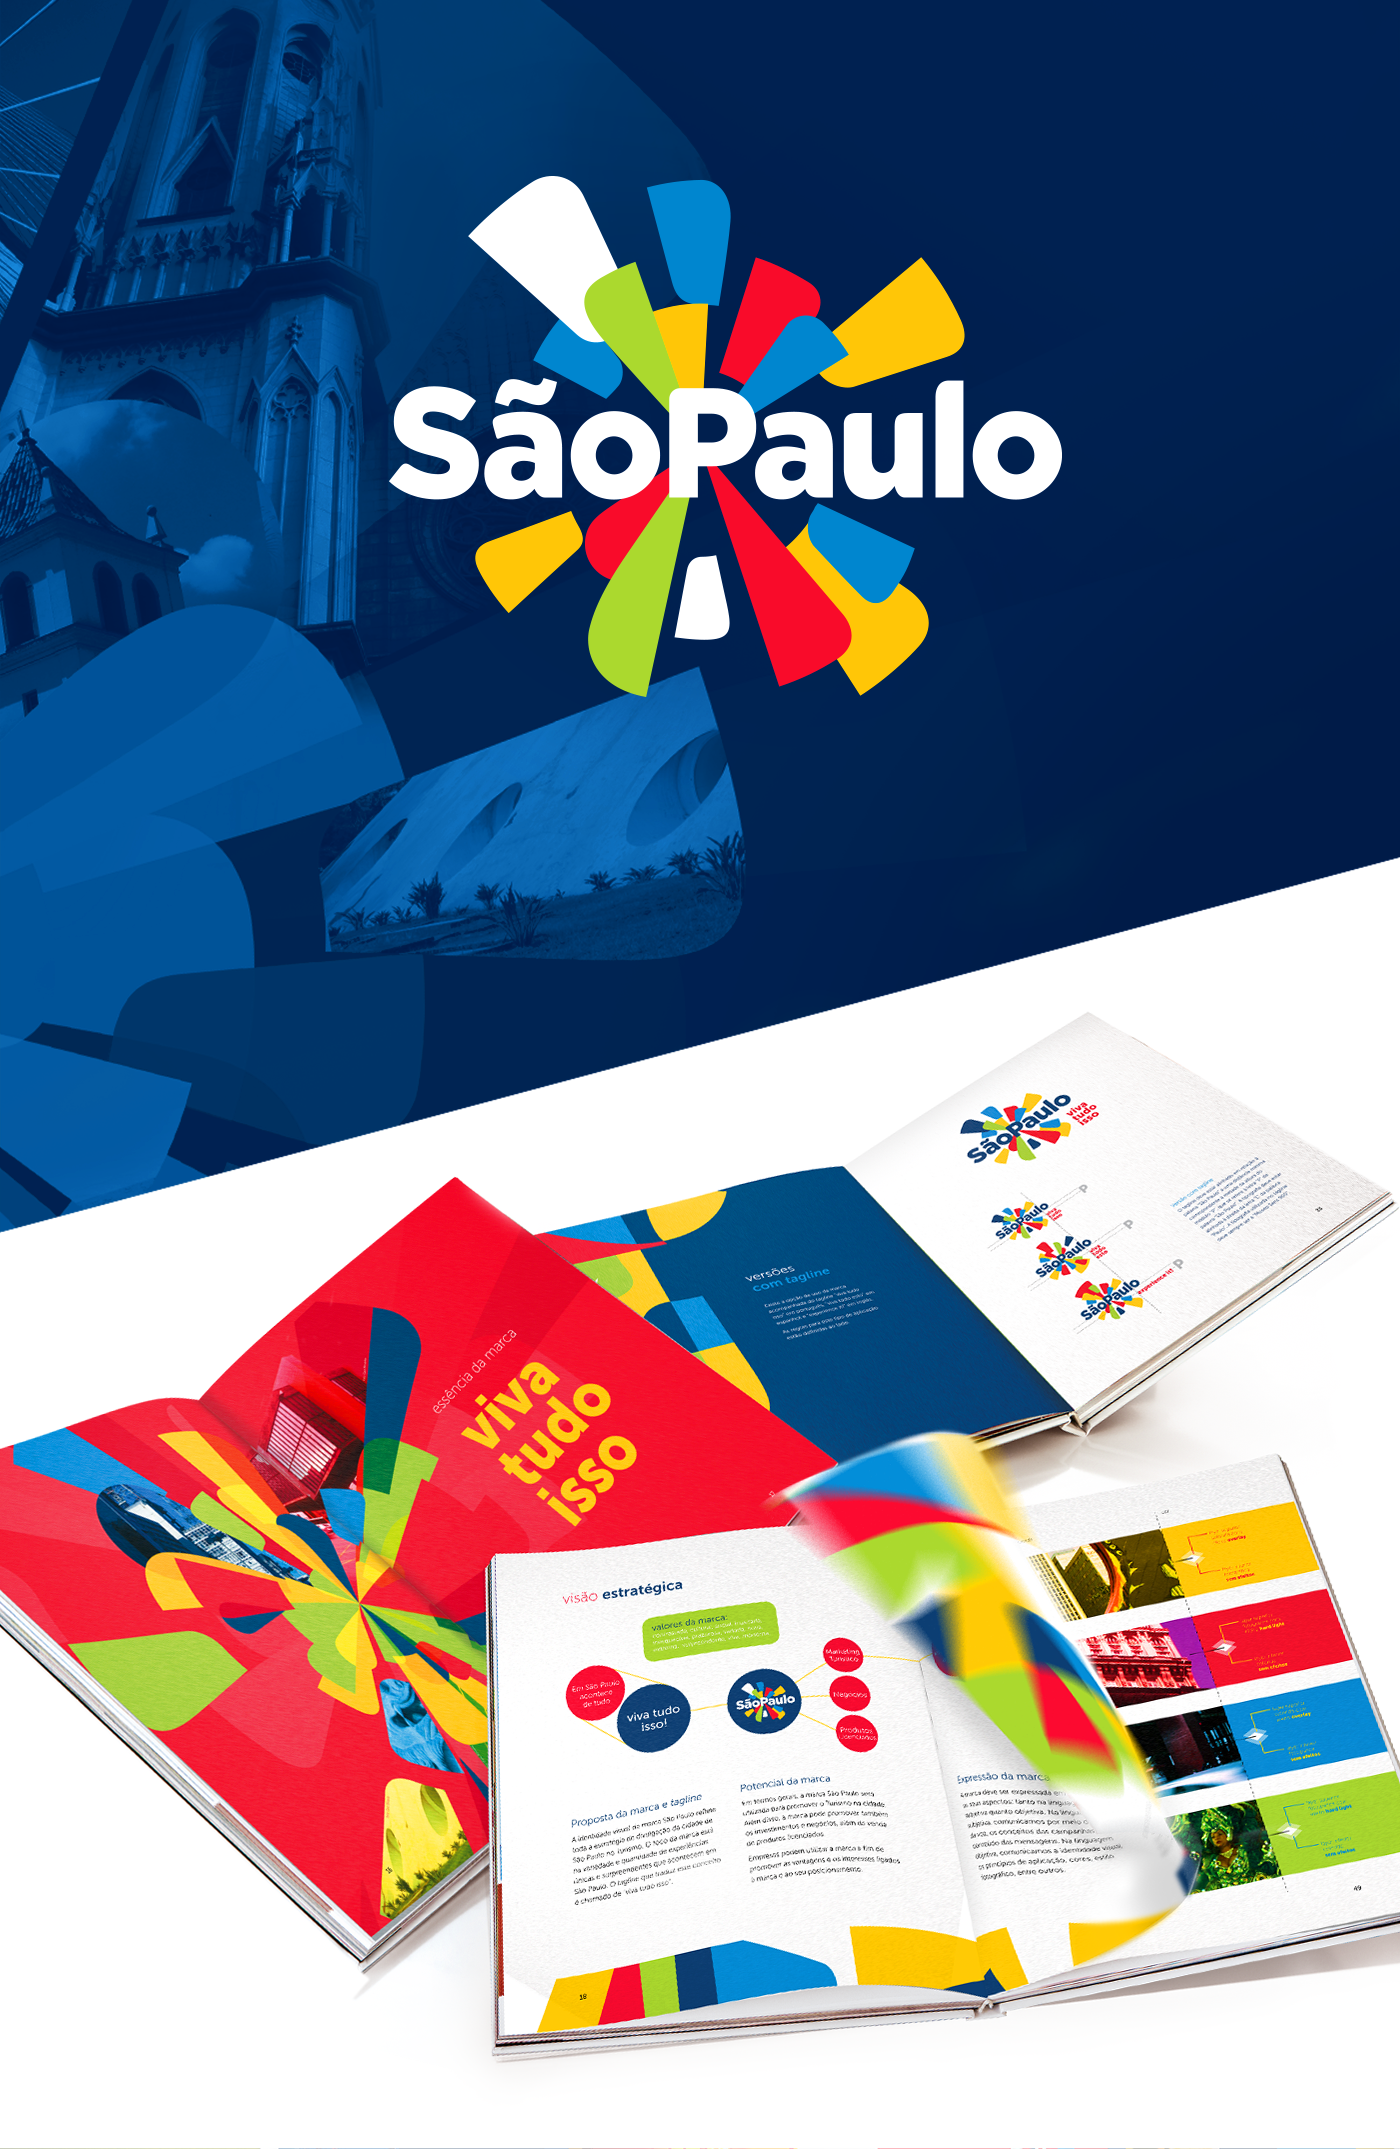 6a67587fedfa A complete place branding project was developed for Sao Paulo